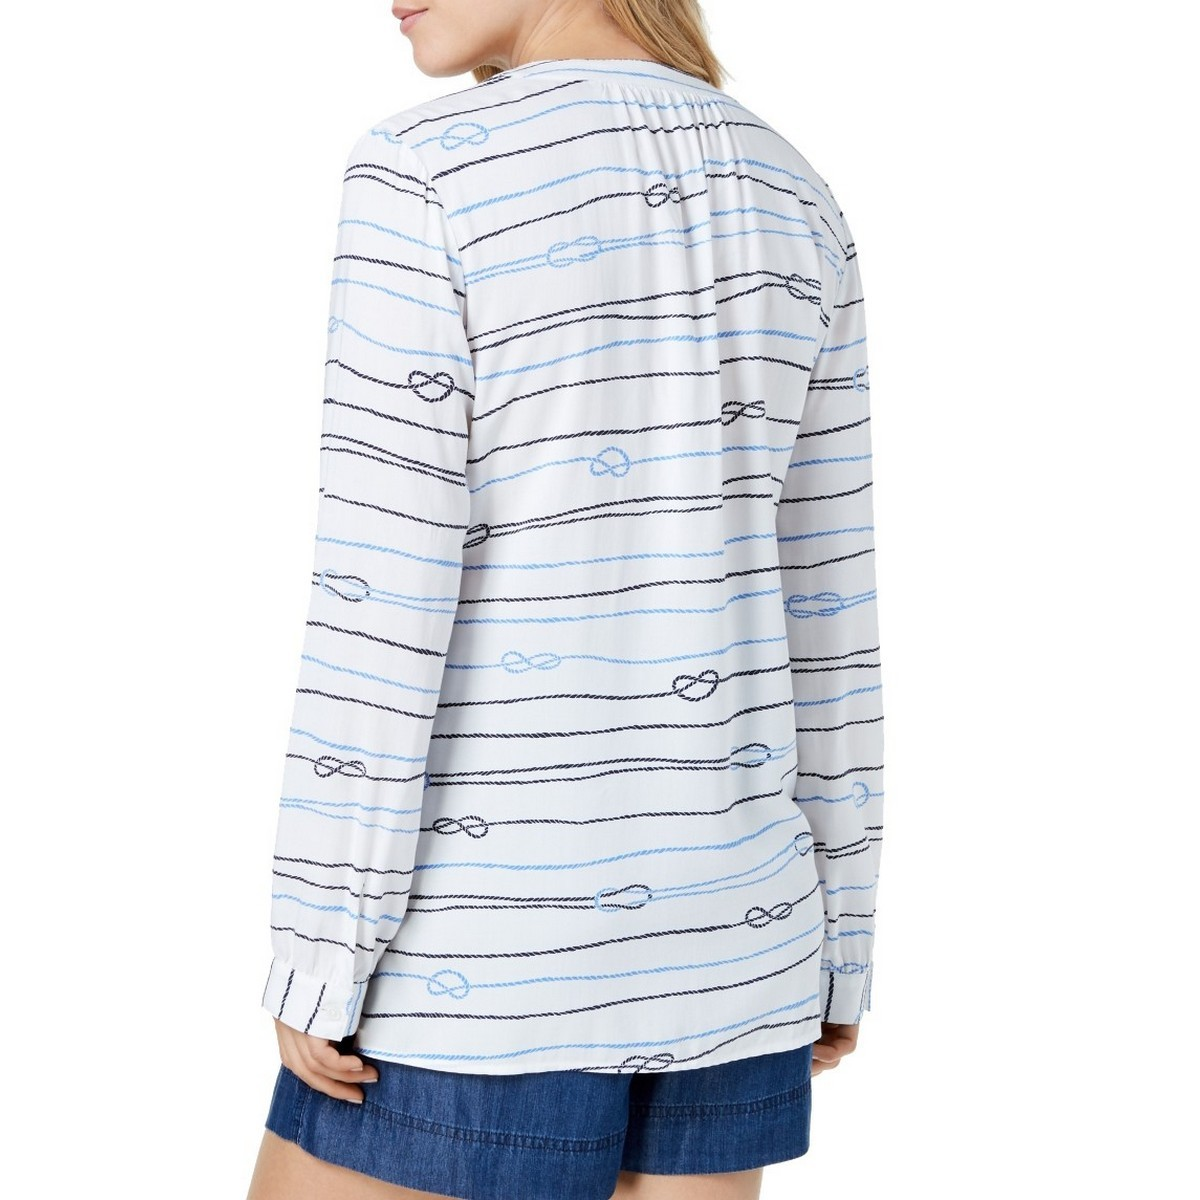 TOMMY-HILFIGER-NEW-Women-039-s-Printed-Lace-up-Blouse-Shirt-Top-TEDO thumbnail 4